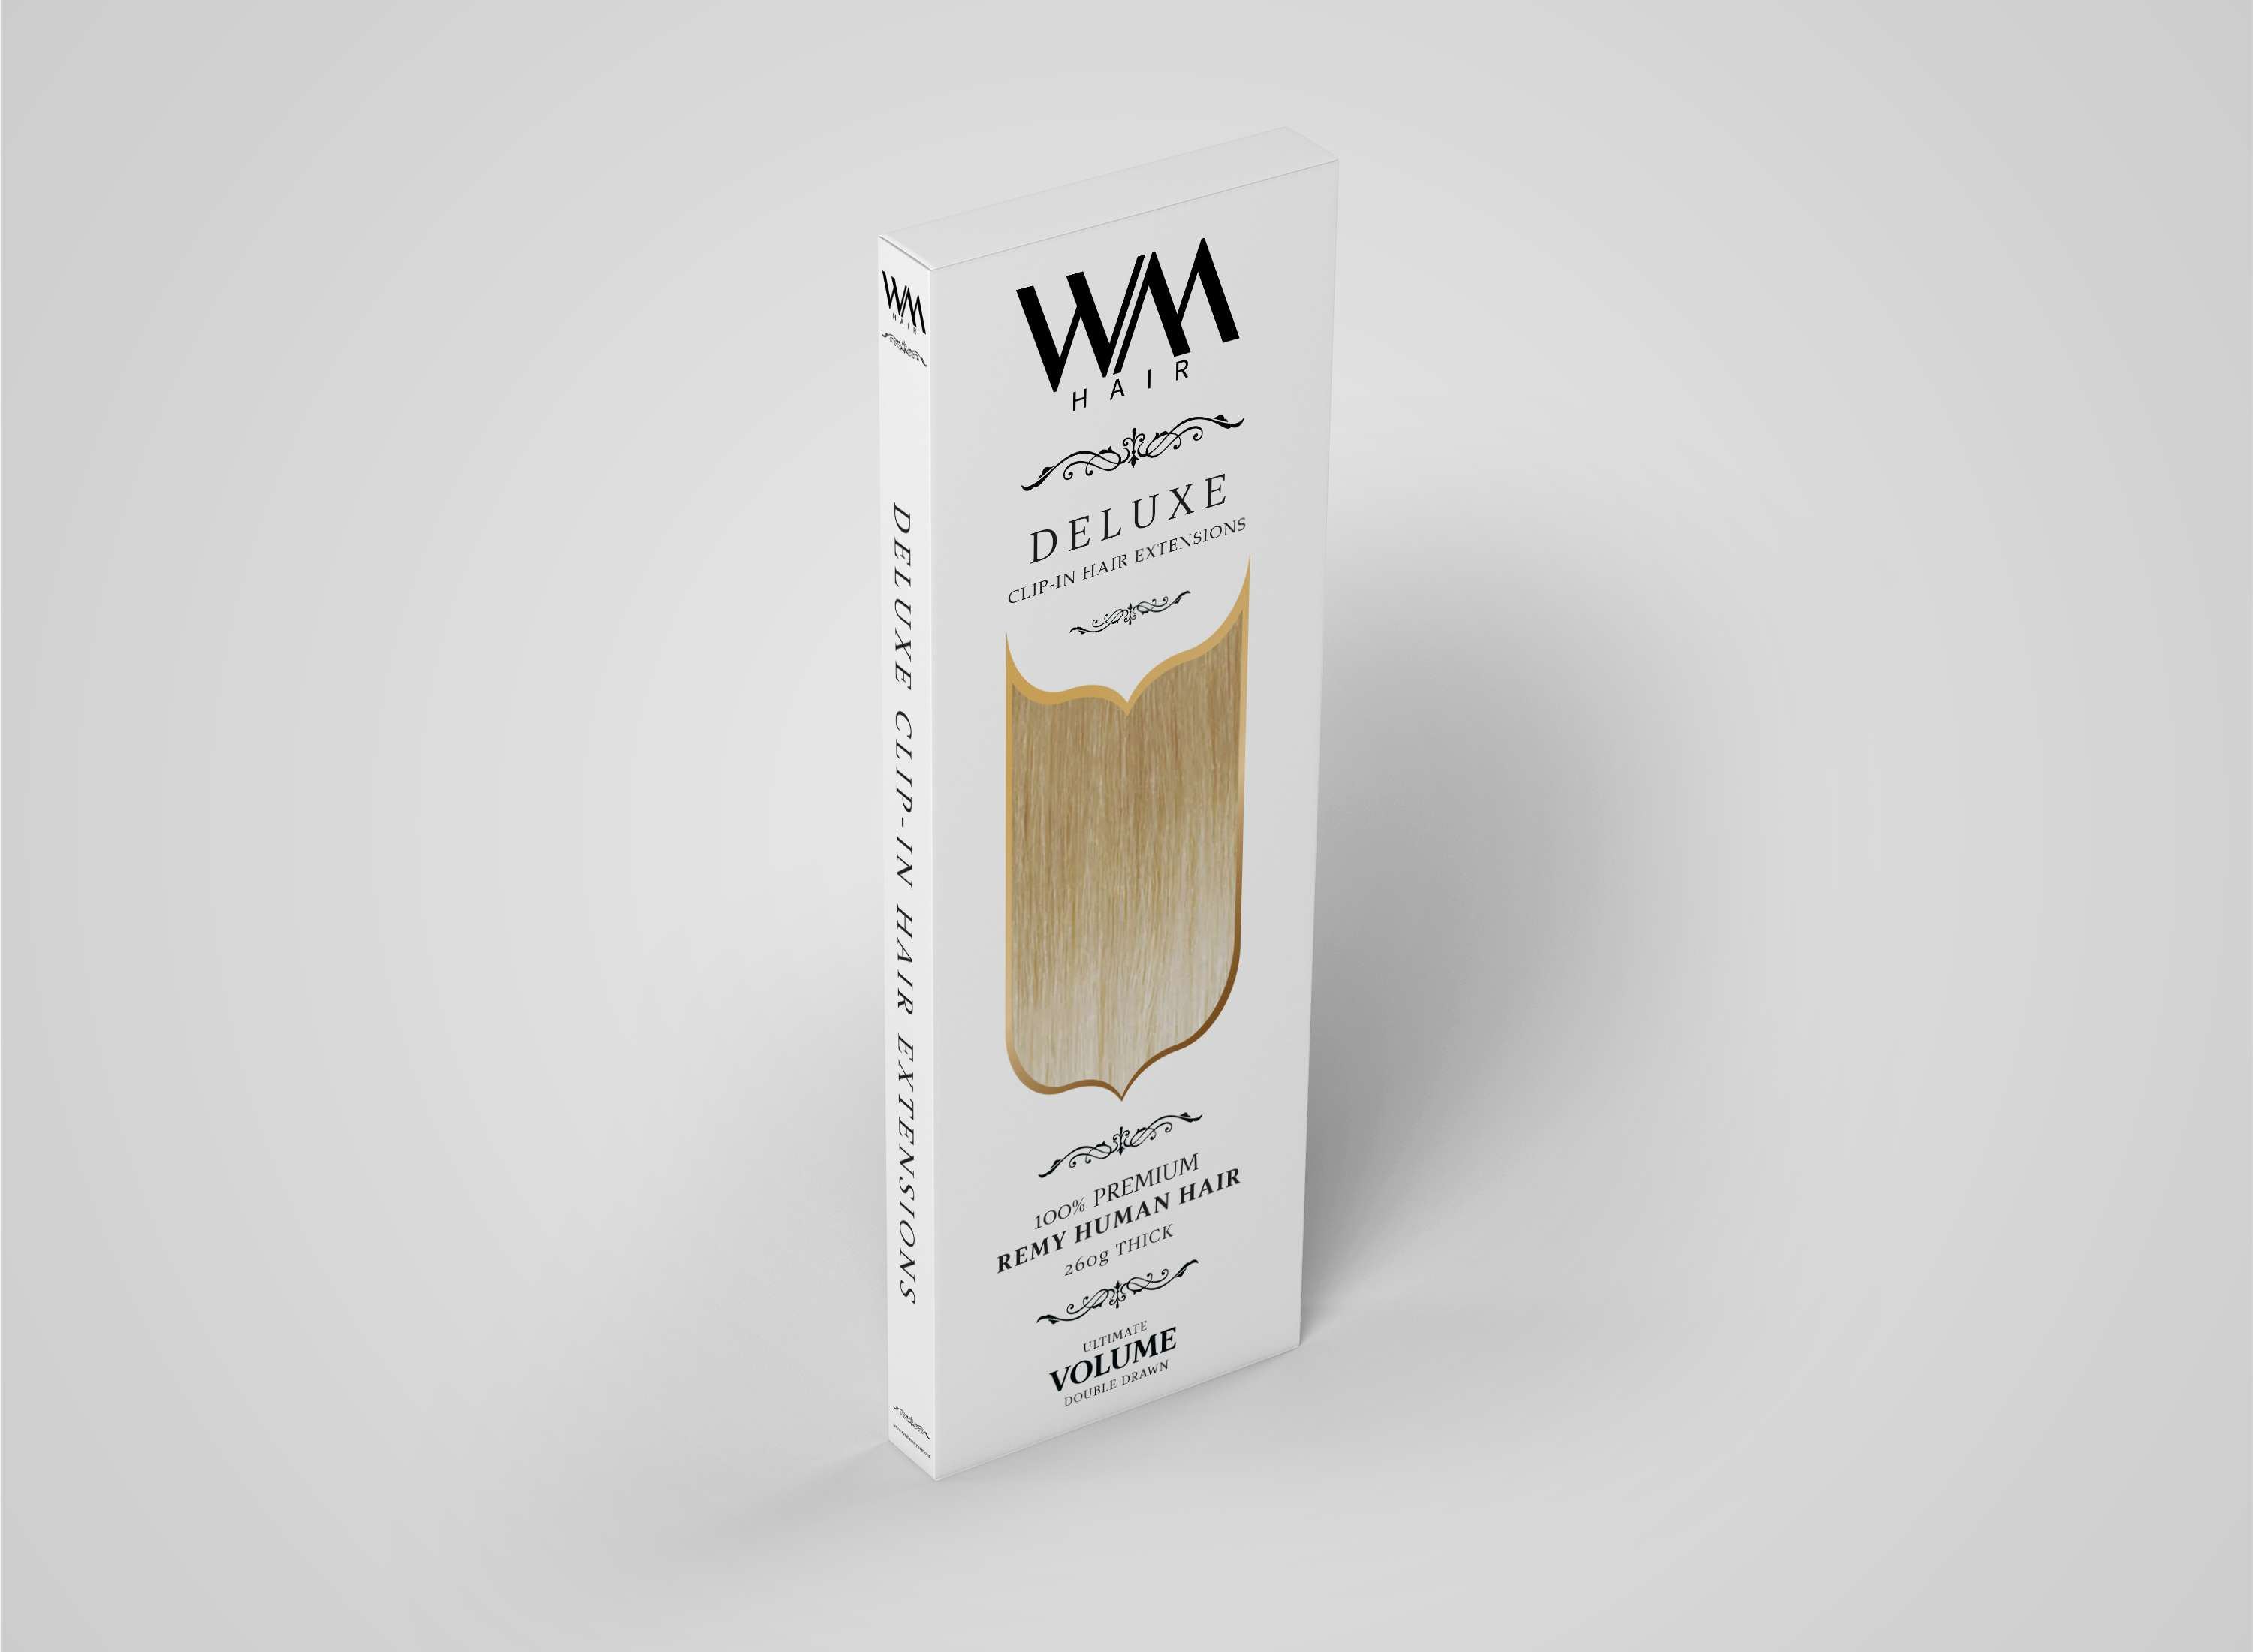 deluxe-clip-in-hair-extensions-packaging-design-remy-image